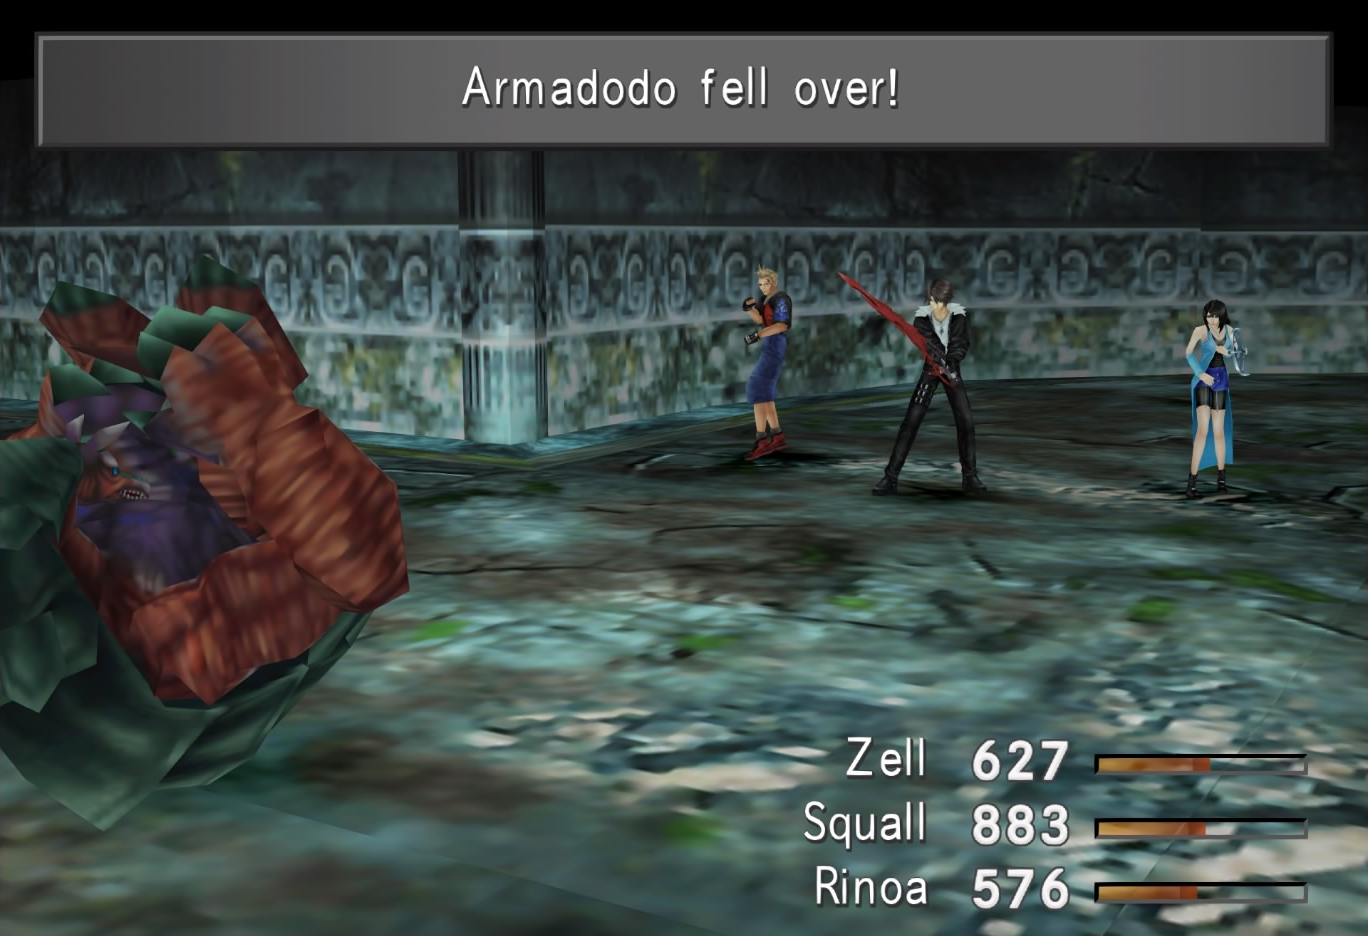 File:Armadodo fell over.png